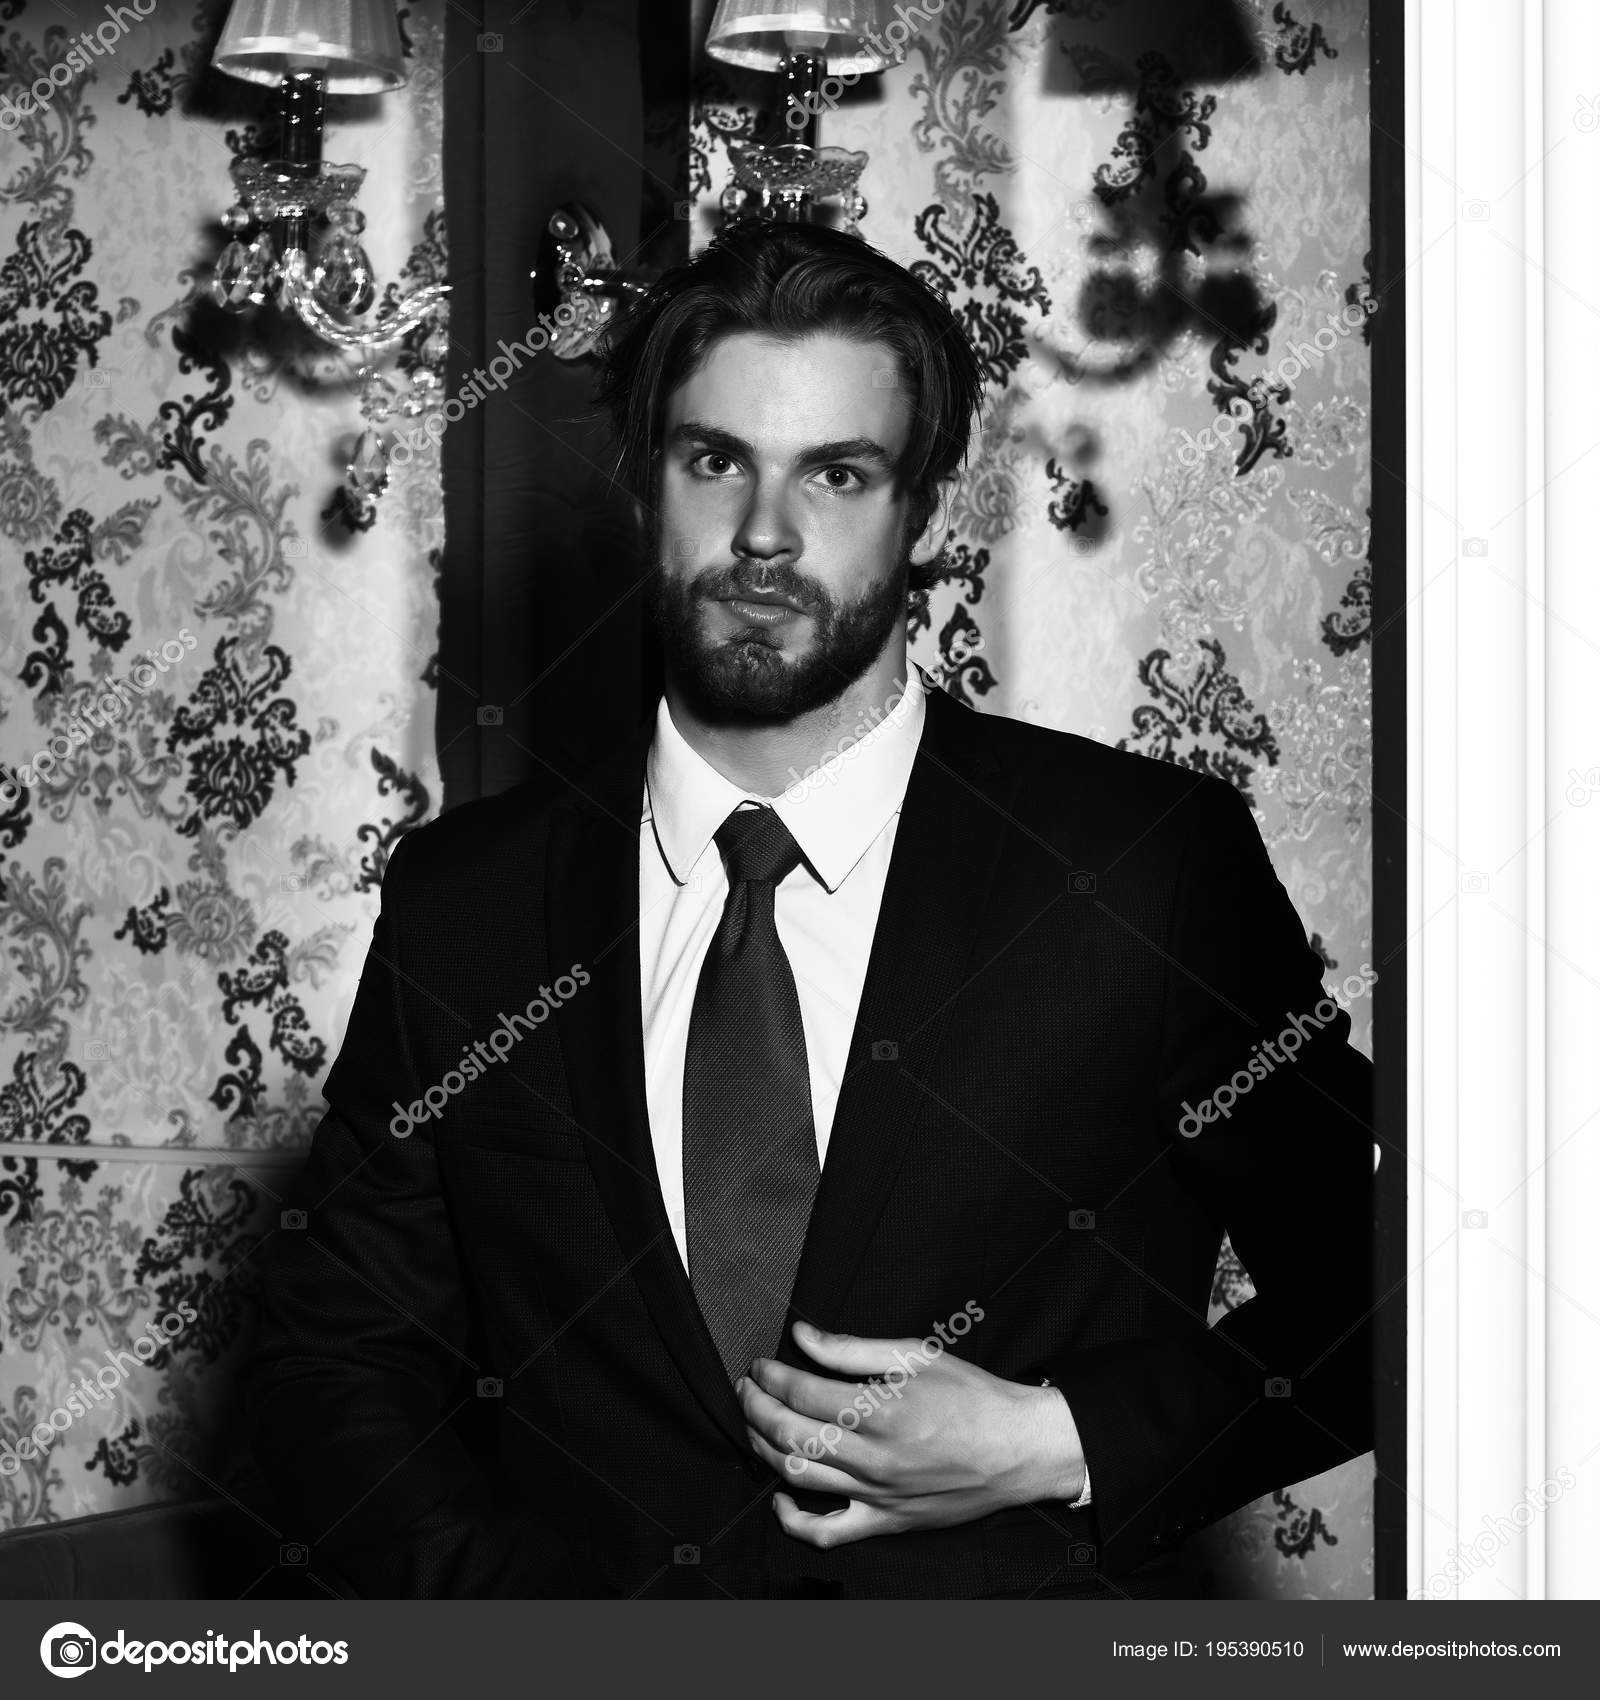 Beard Man Wallpaper Bearded Man Businessman In Suit And